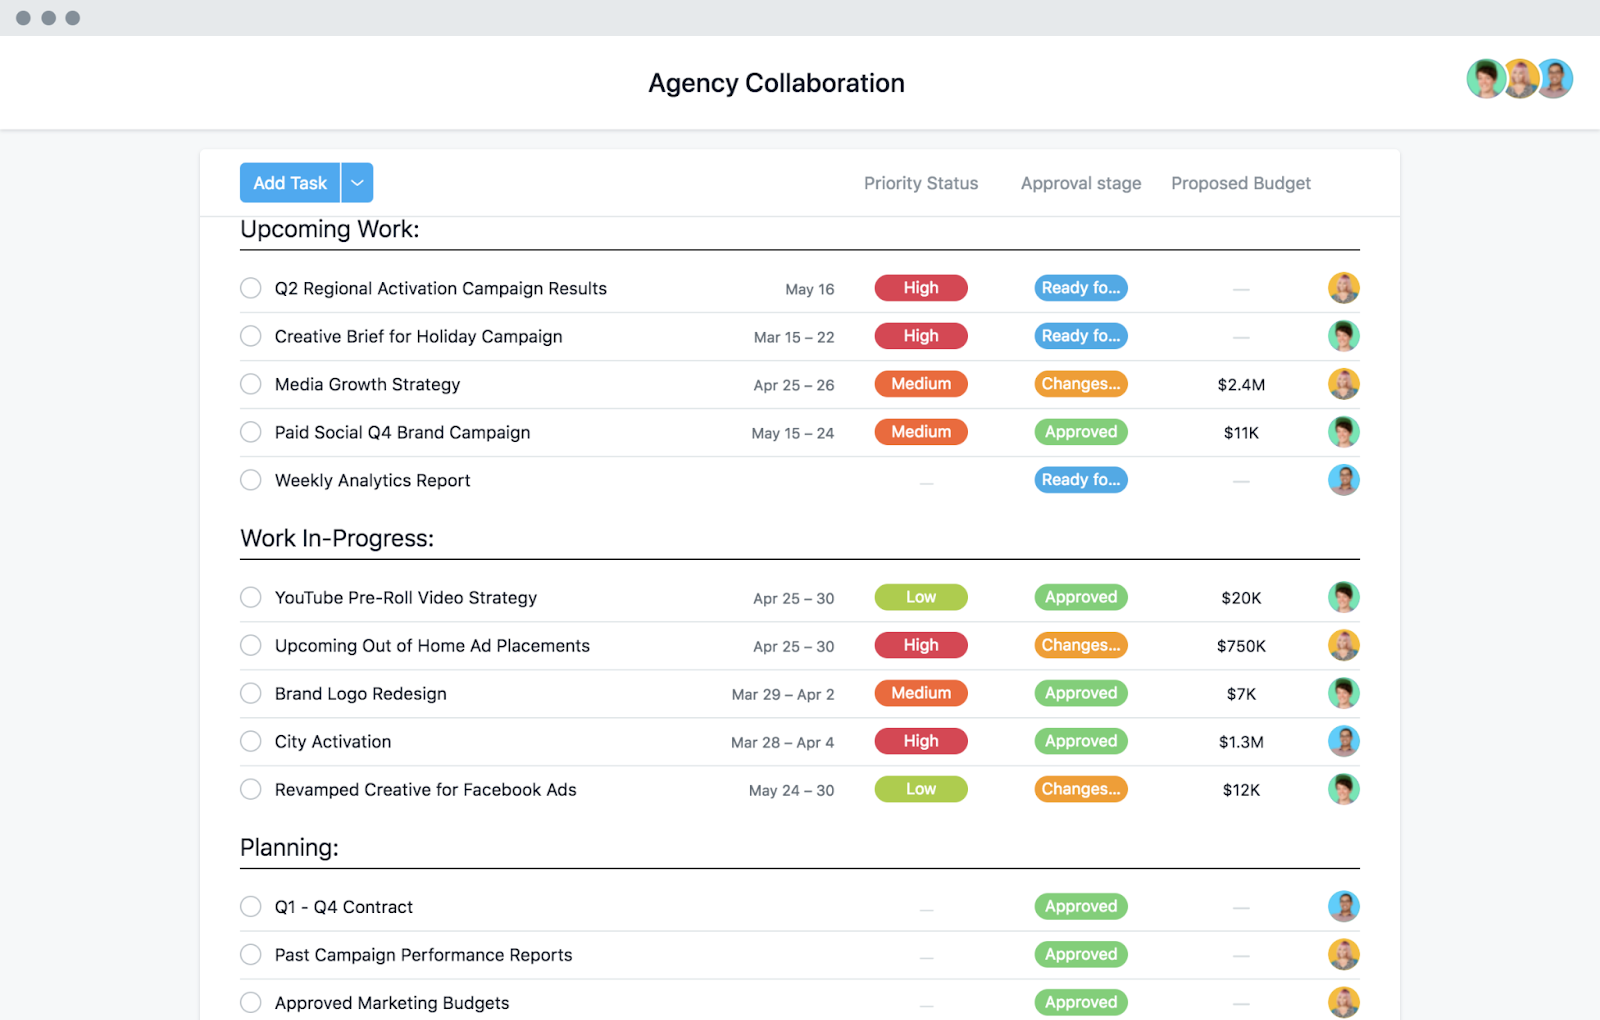 a screenshot of an agency collaboration project in asana